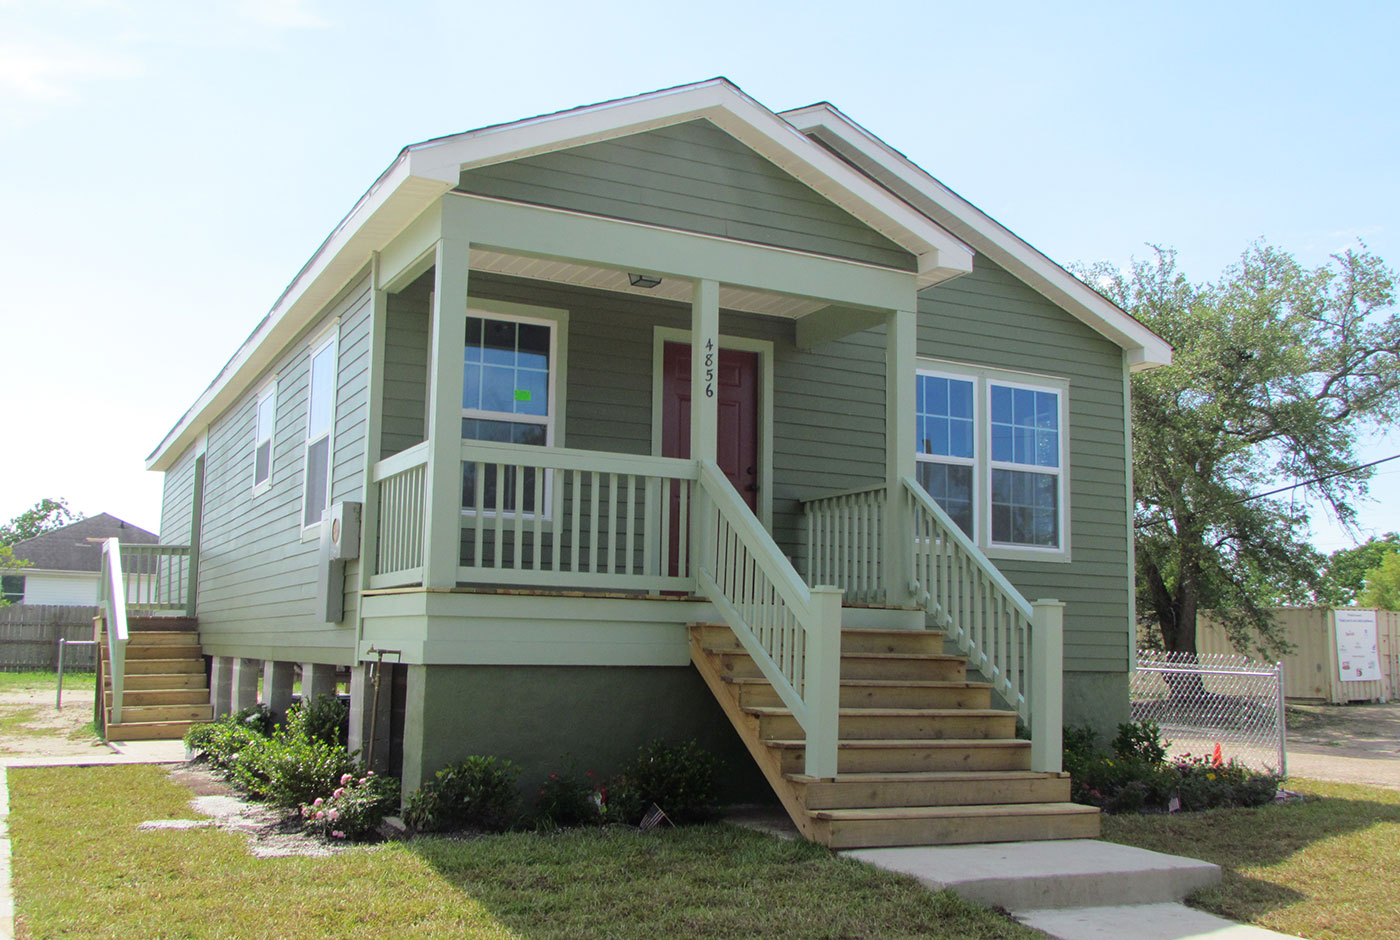 Home features new orleans area habitat for humanity for 4 bed new build house